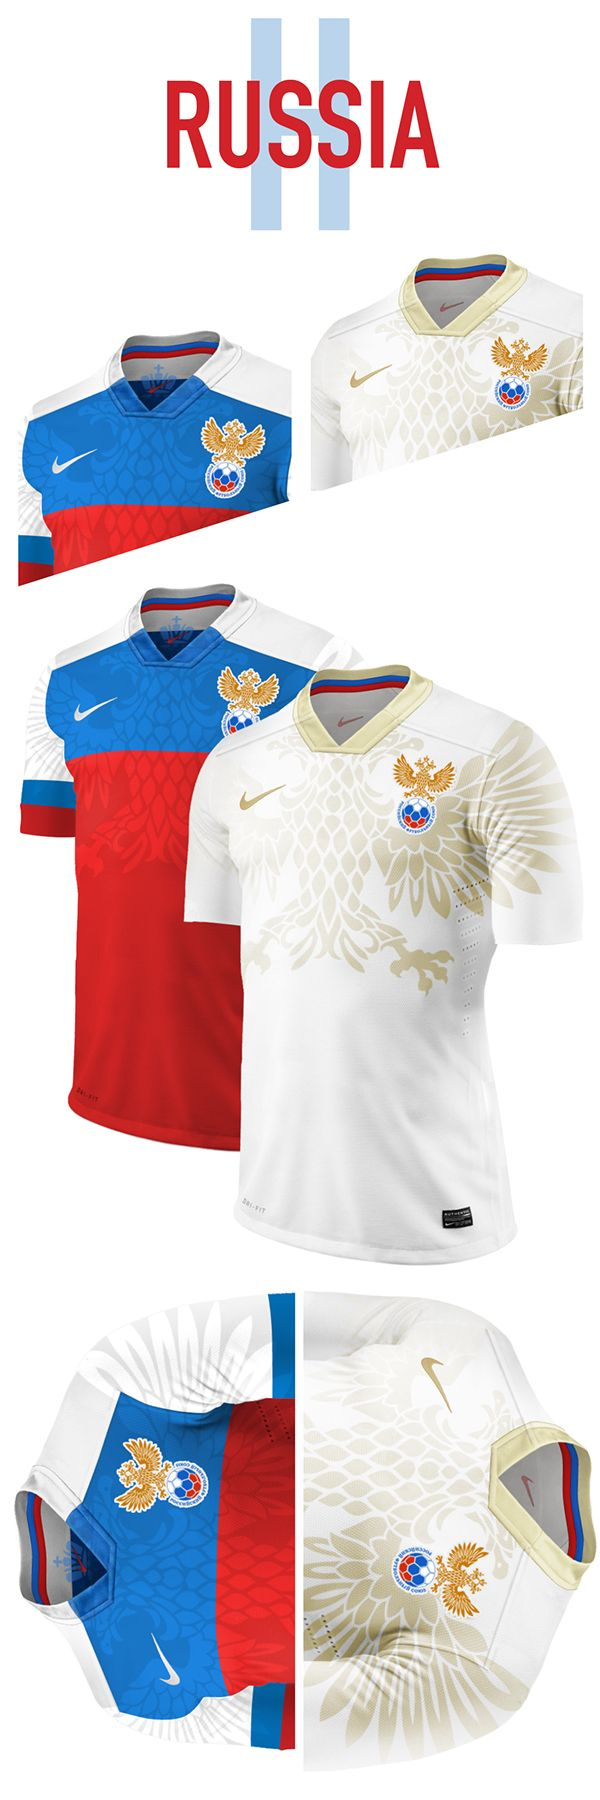 World Cup. Group H. Concepts by Nerea Palacios, via Behance